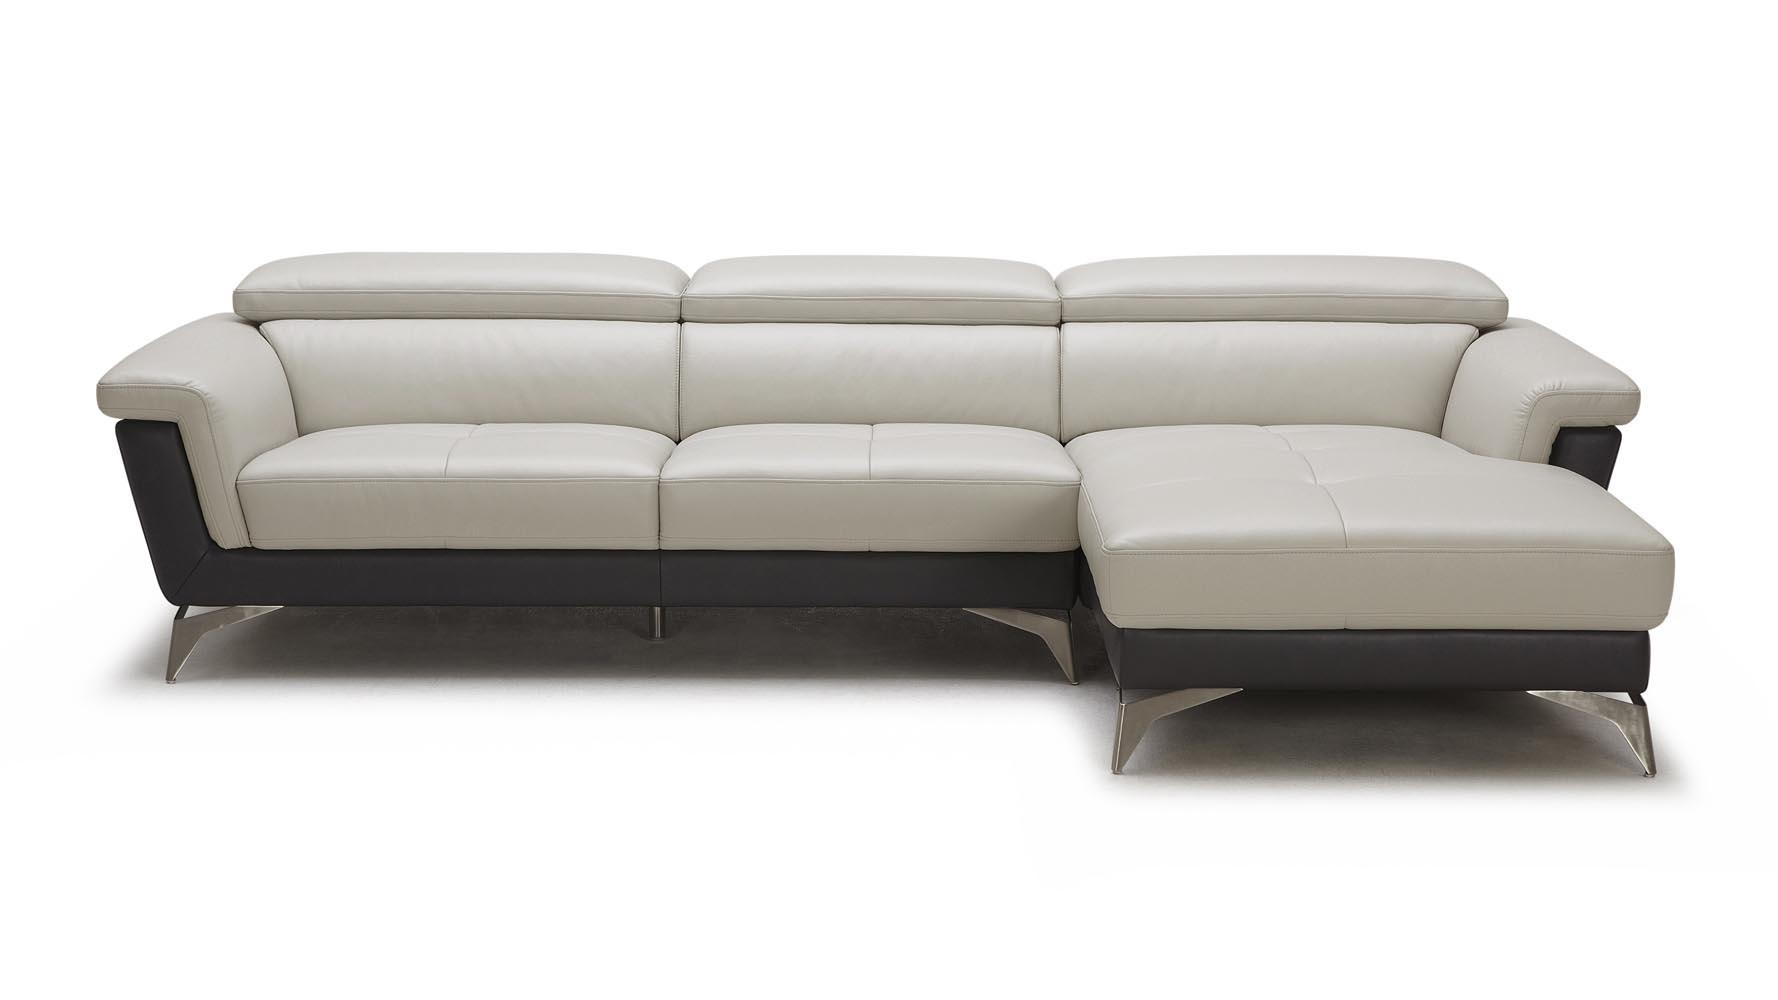 Gray/black Savoy 3 Seater Sectional Sofa | Zuri Furniture Within Savoy Sofas (View 10 of 20)